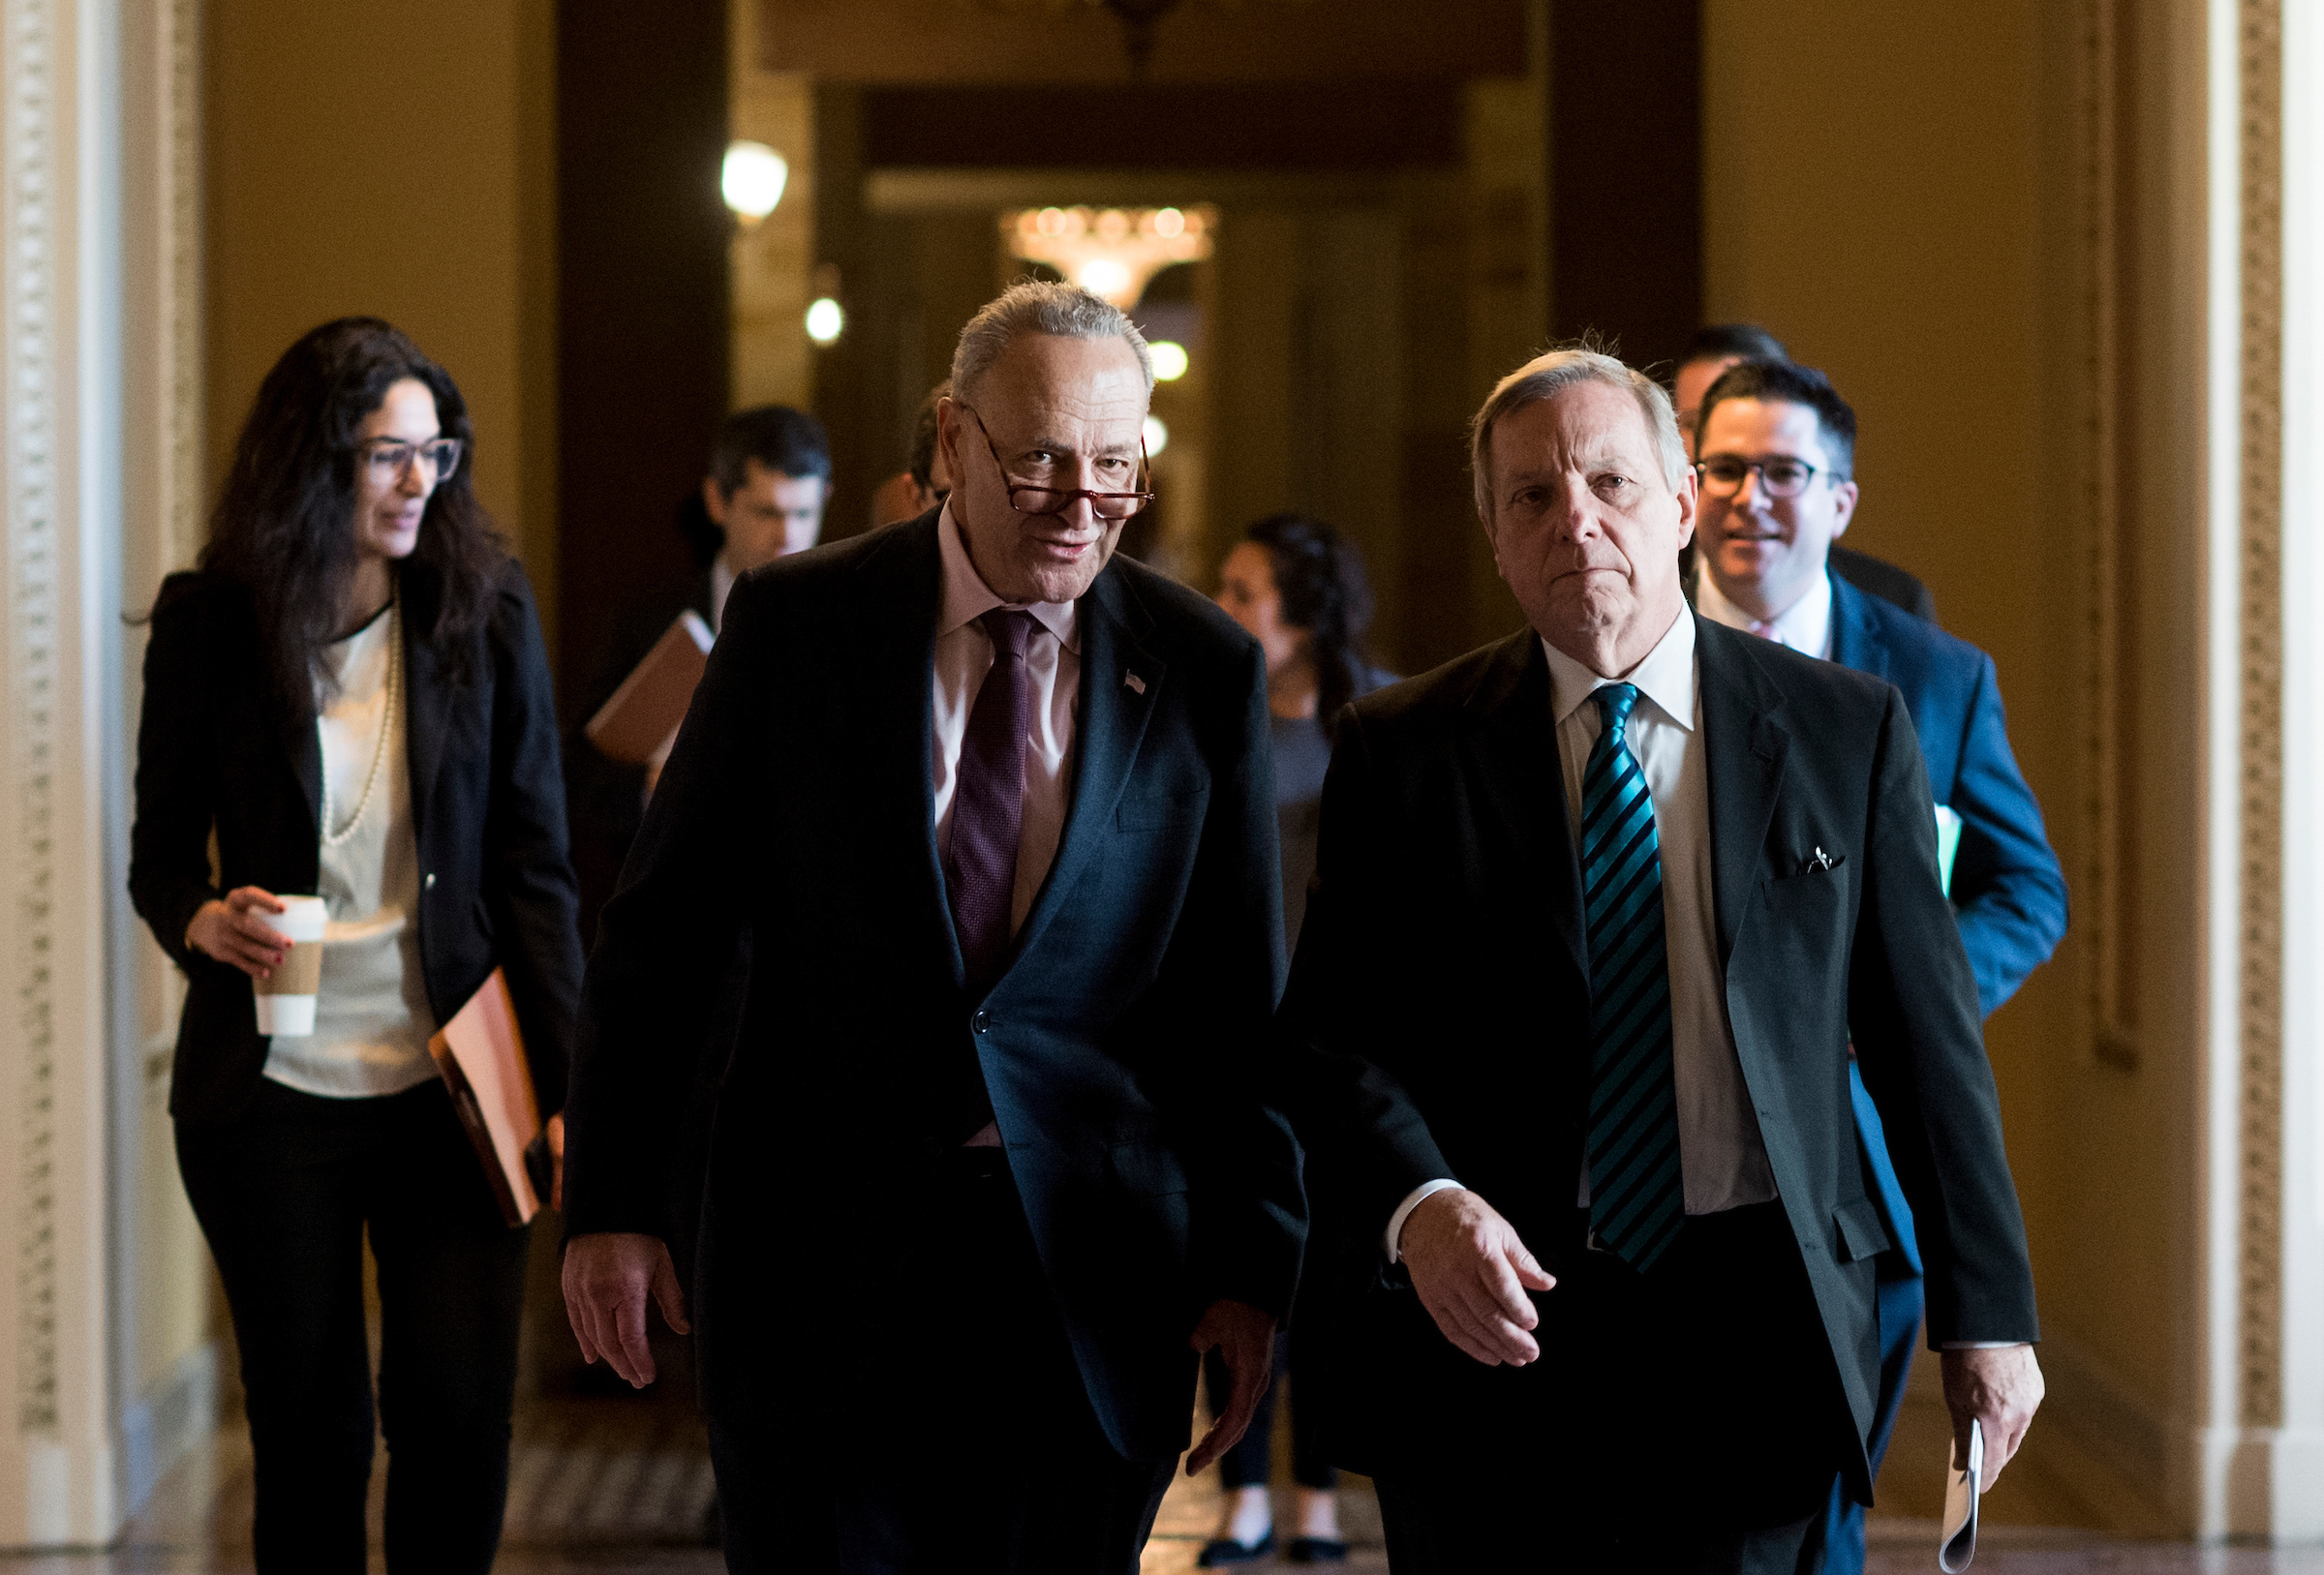 UNITED STATES - DECEMBER 1: Senate Minority Leader Chuck Schumer, D-N.Y., and Sen. Richard Durbin, D-Ill., talk as they walk through the Capitol before a procedural vote on tax reform in the Capitol on Friday, Dec. 1, 2017. (Photo By Bill Clark/CQ Roll Call)